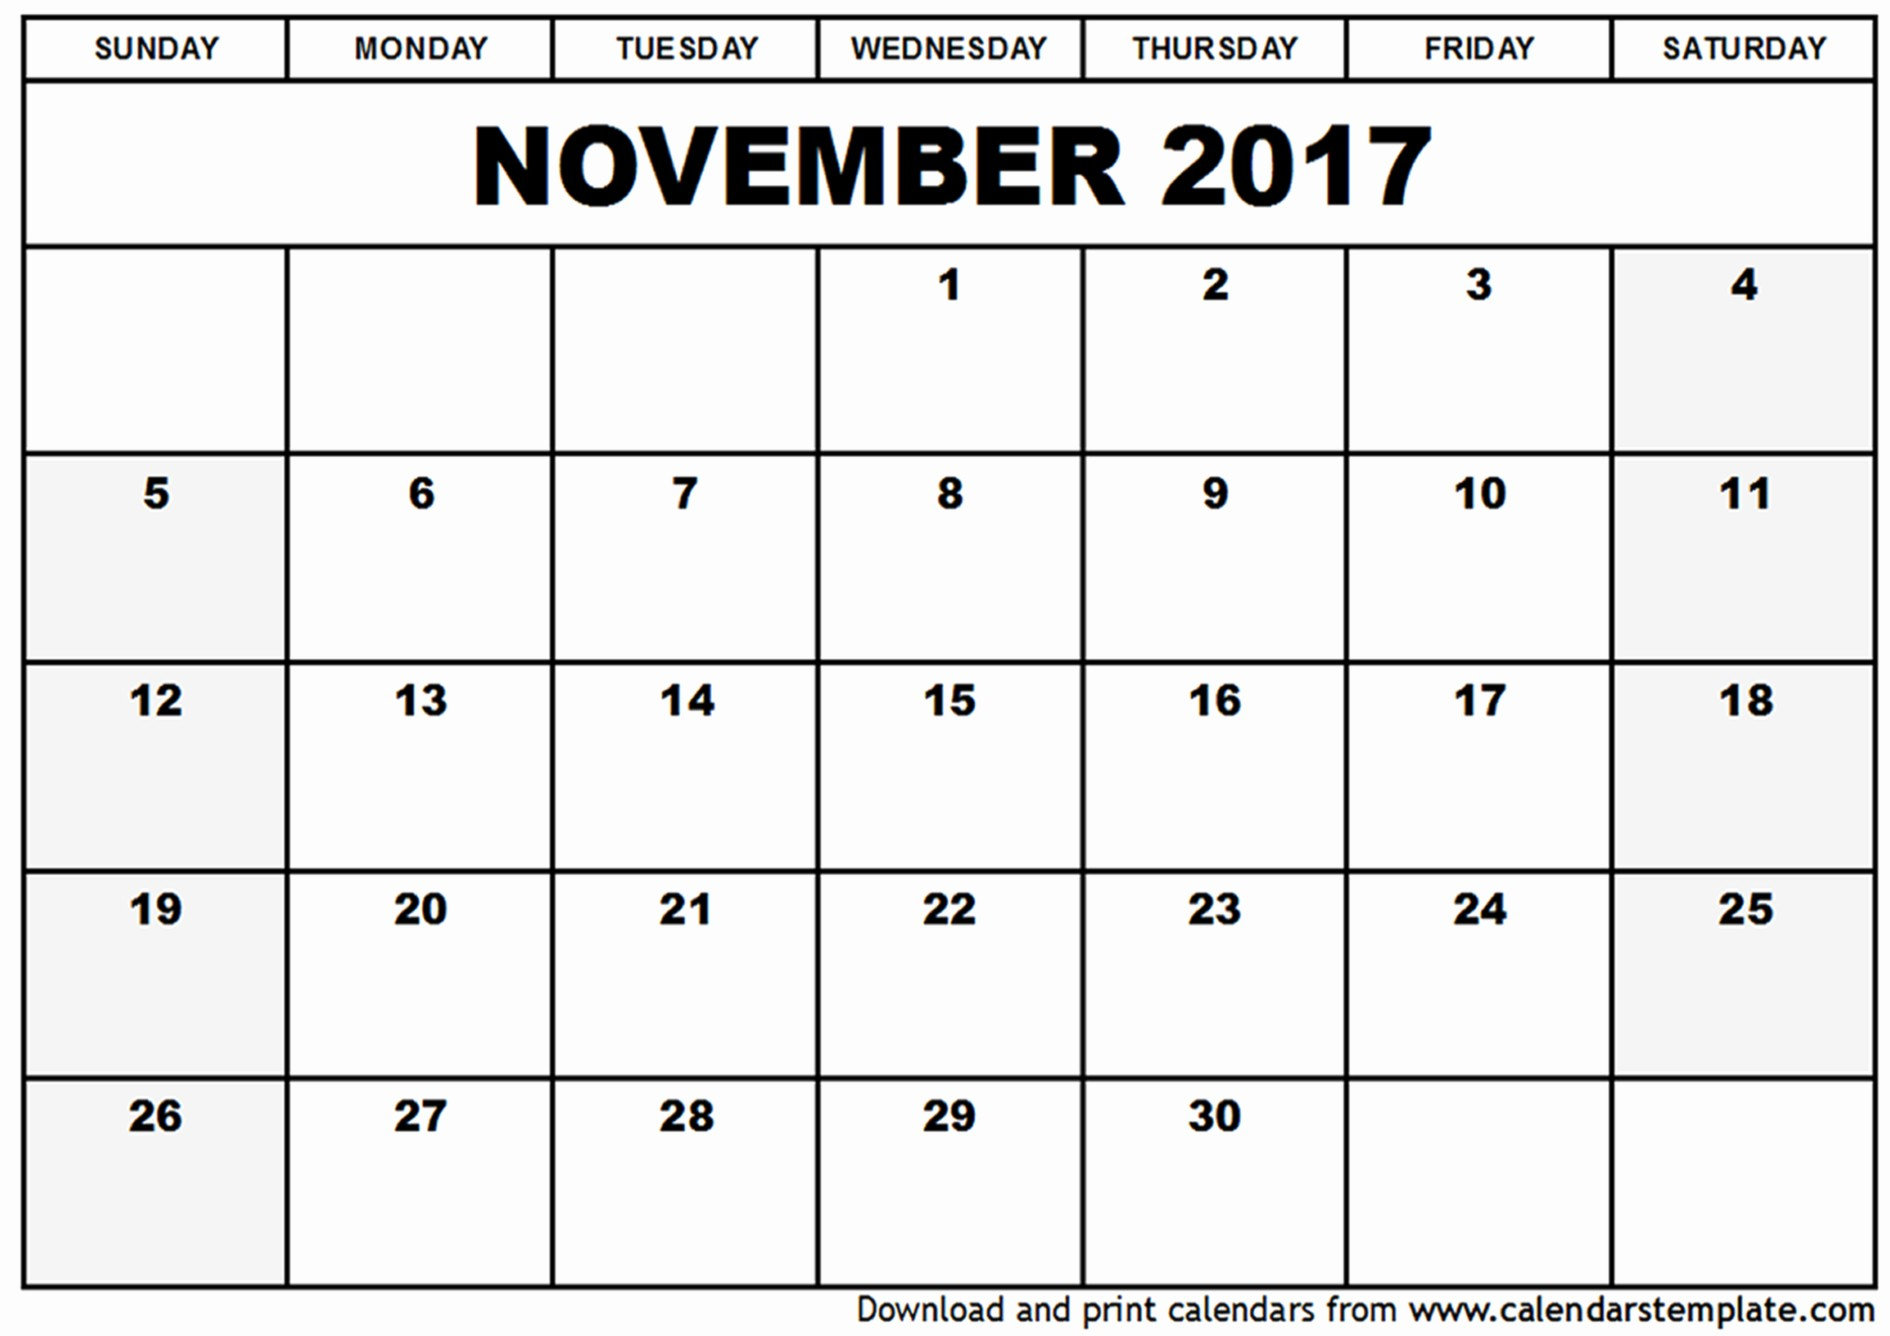 2017 Yearly Calendar Excel Template Luxury November 2017 Calendar Excel